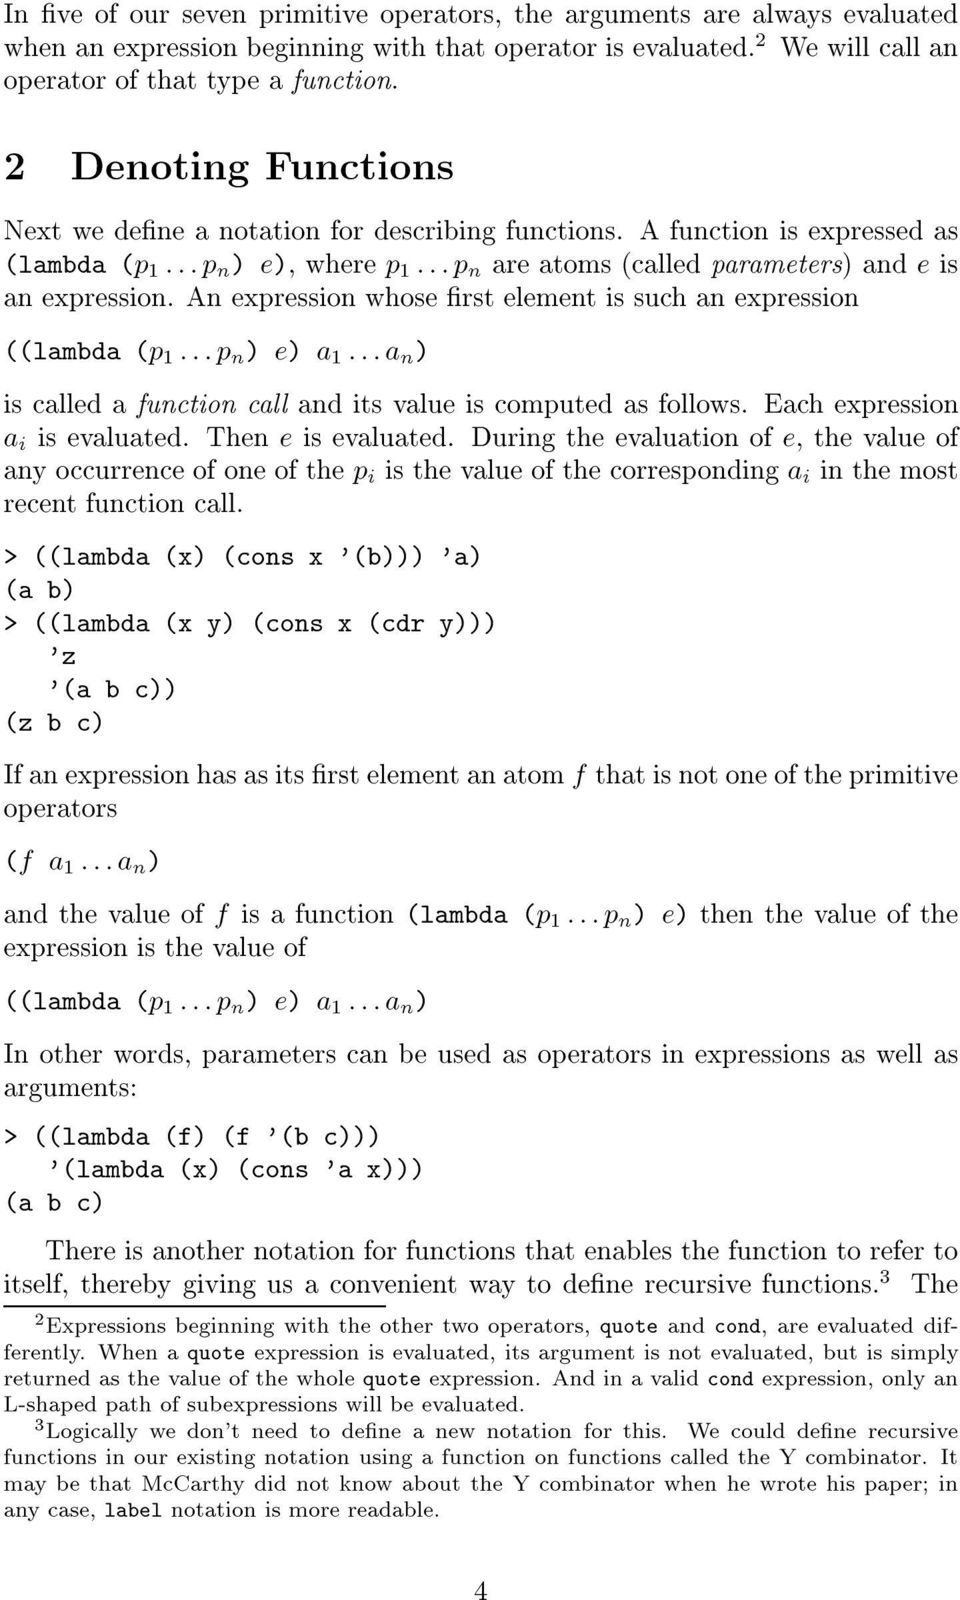 An expression whose rs elemen is such an expression ((lambda (p 1 :::p n ) e) a 1 :::a n ) is called a funcion call and is value is compued as follows. Each expression a i is evaluaed.